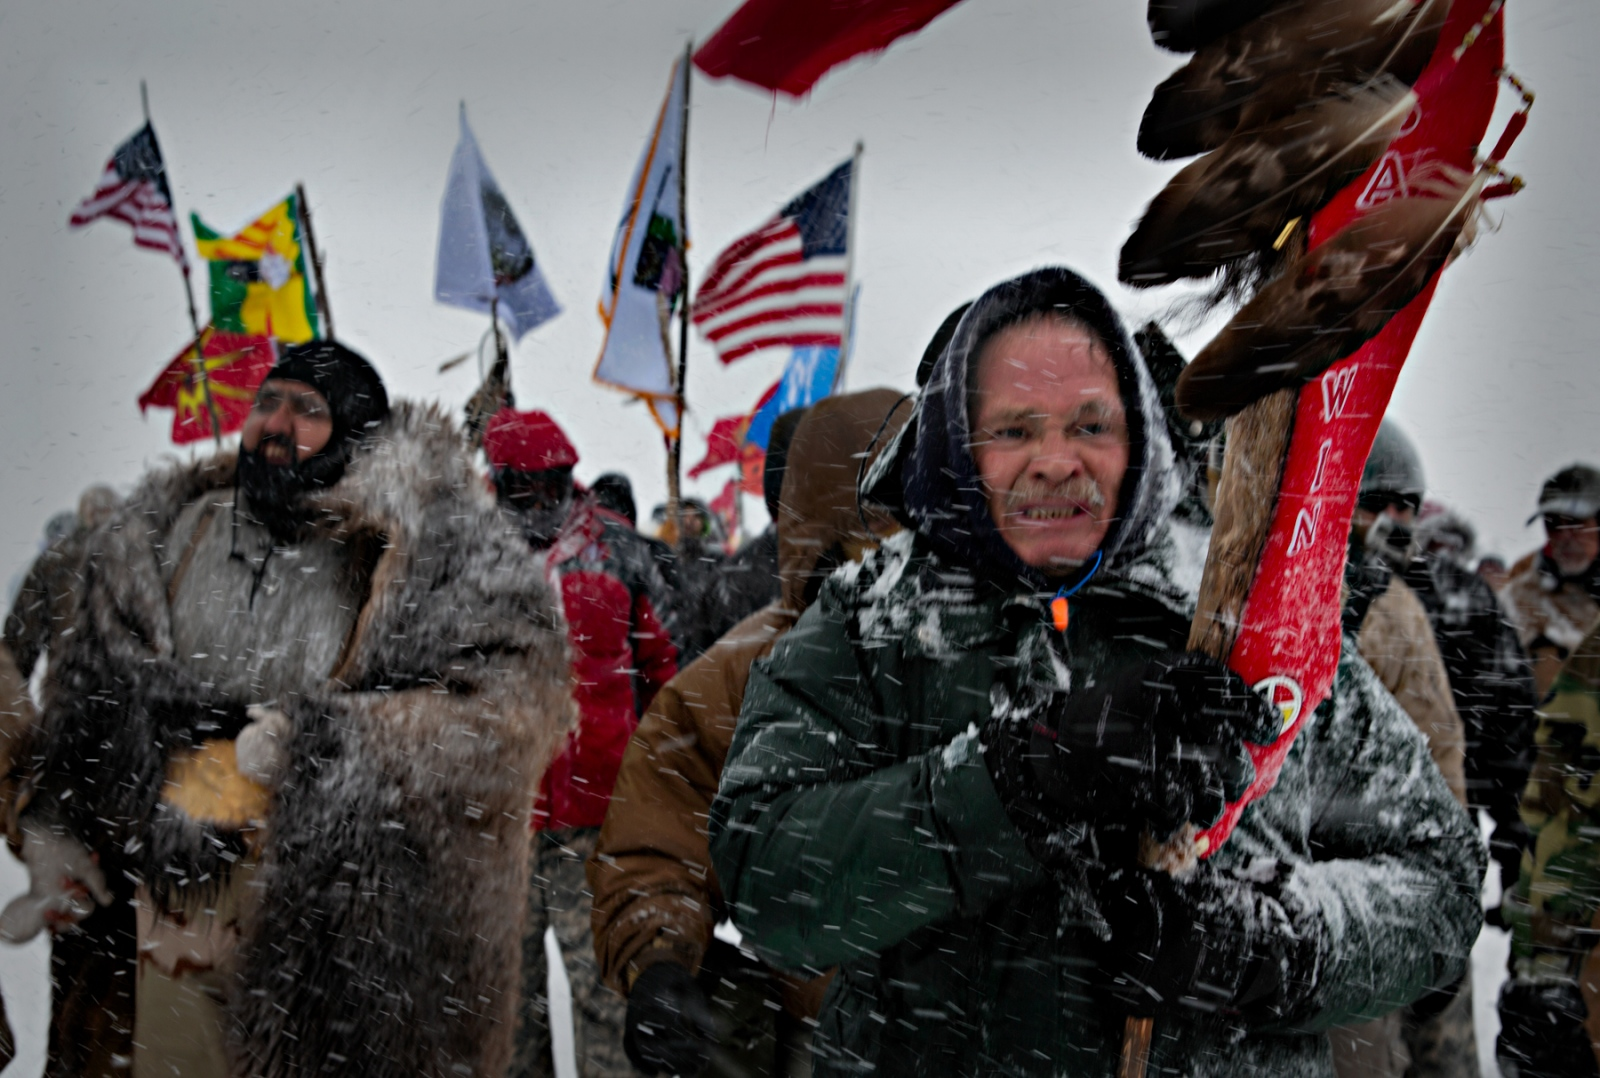 US Military Veterans for Peace joined the Water Protectors at the Oceti Sakowin Camp near the Standing Rock Sioux Reservation during a particulary fierce Decemer blizzard.